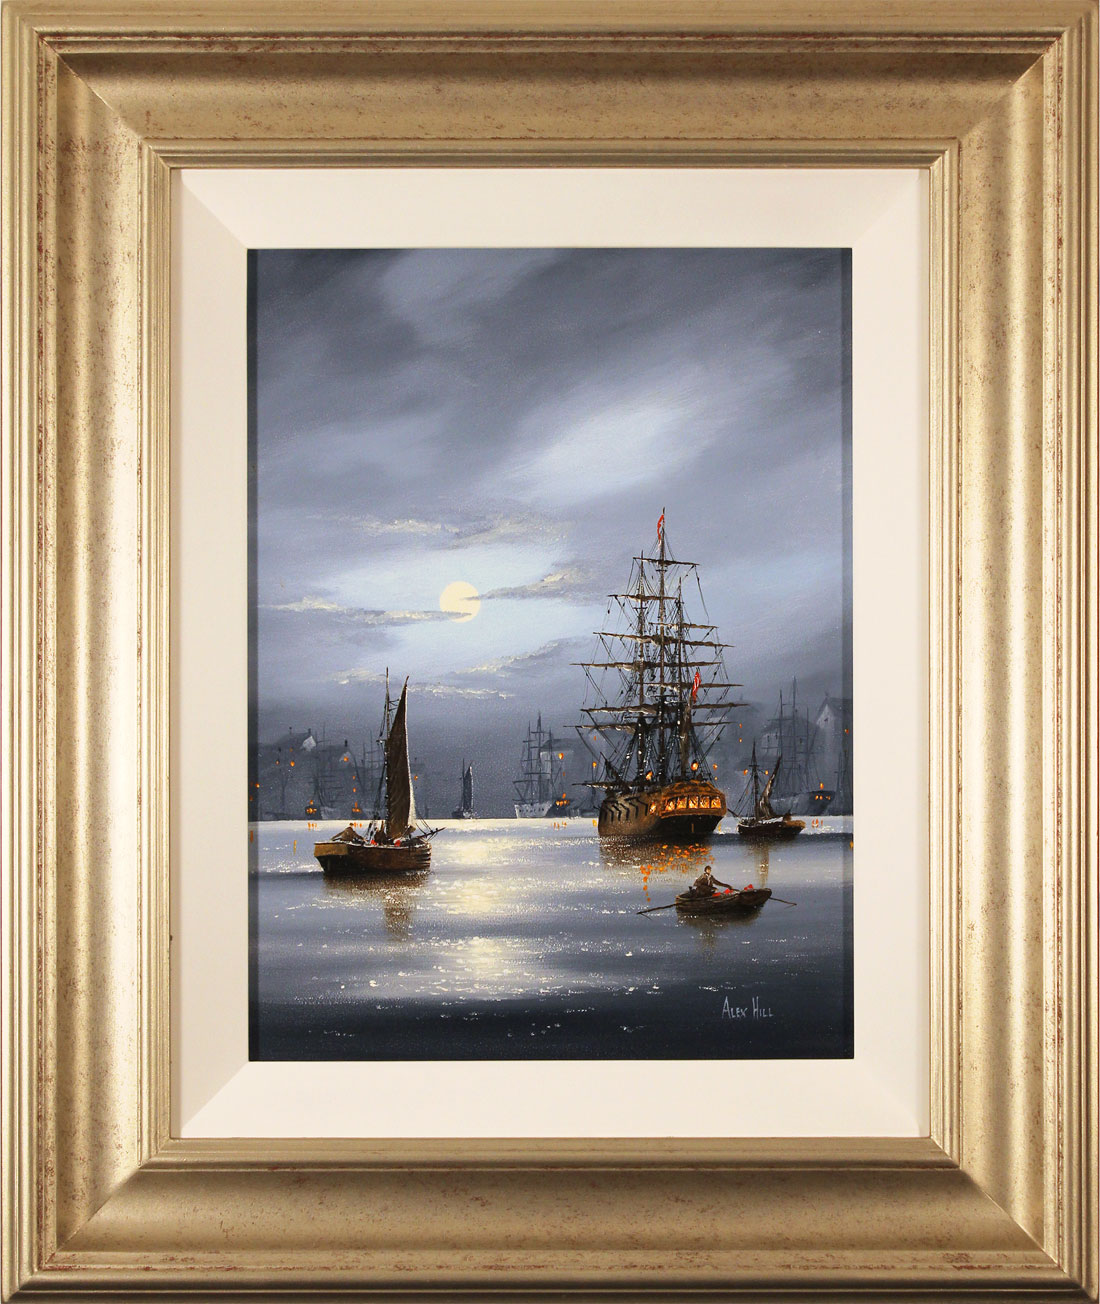 Alex Hill, Original oil painting on panel, Harbour Lights Click to enlarge